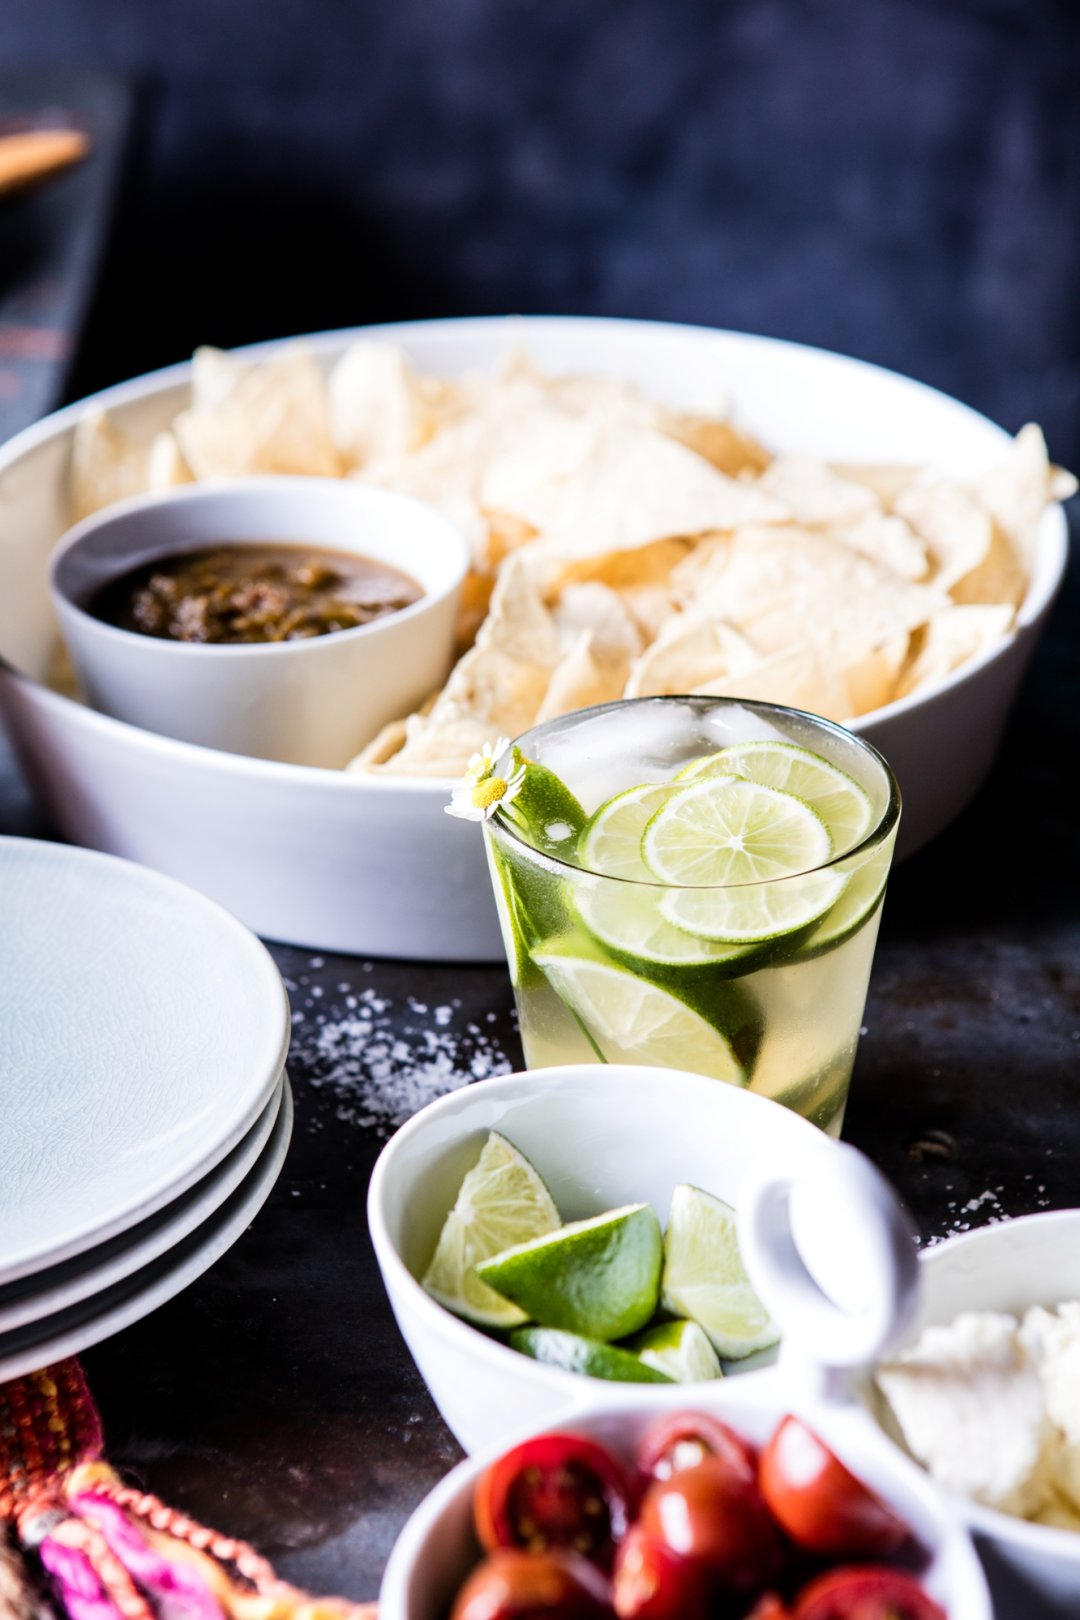 Glass with margarita and limes in front of chips and salsa with stack of plates to the left and 3-part server with condiments in front